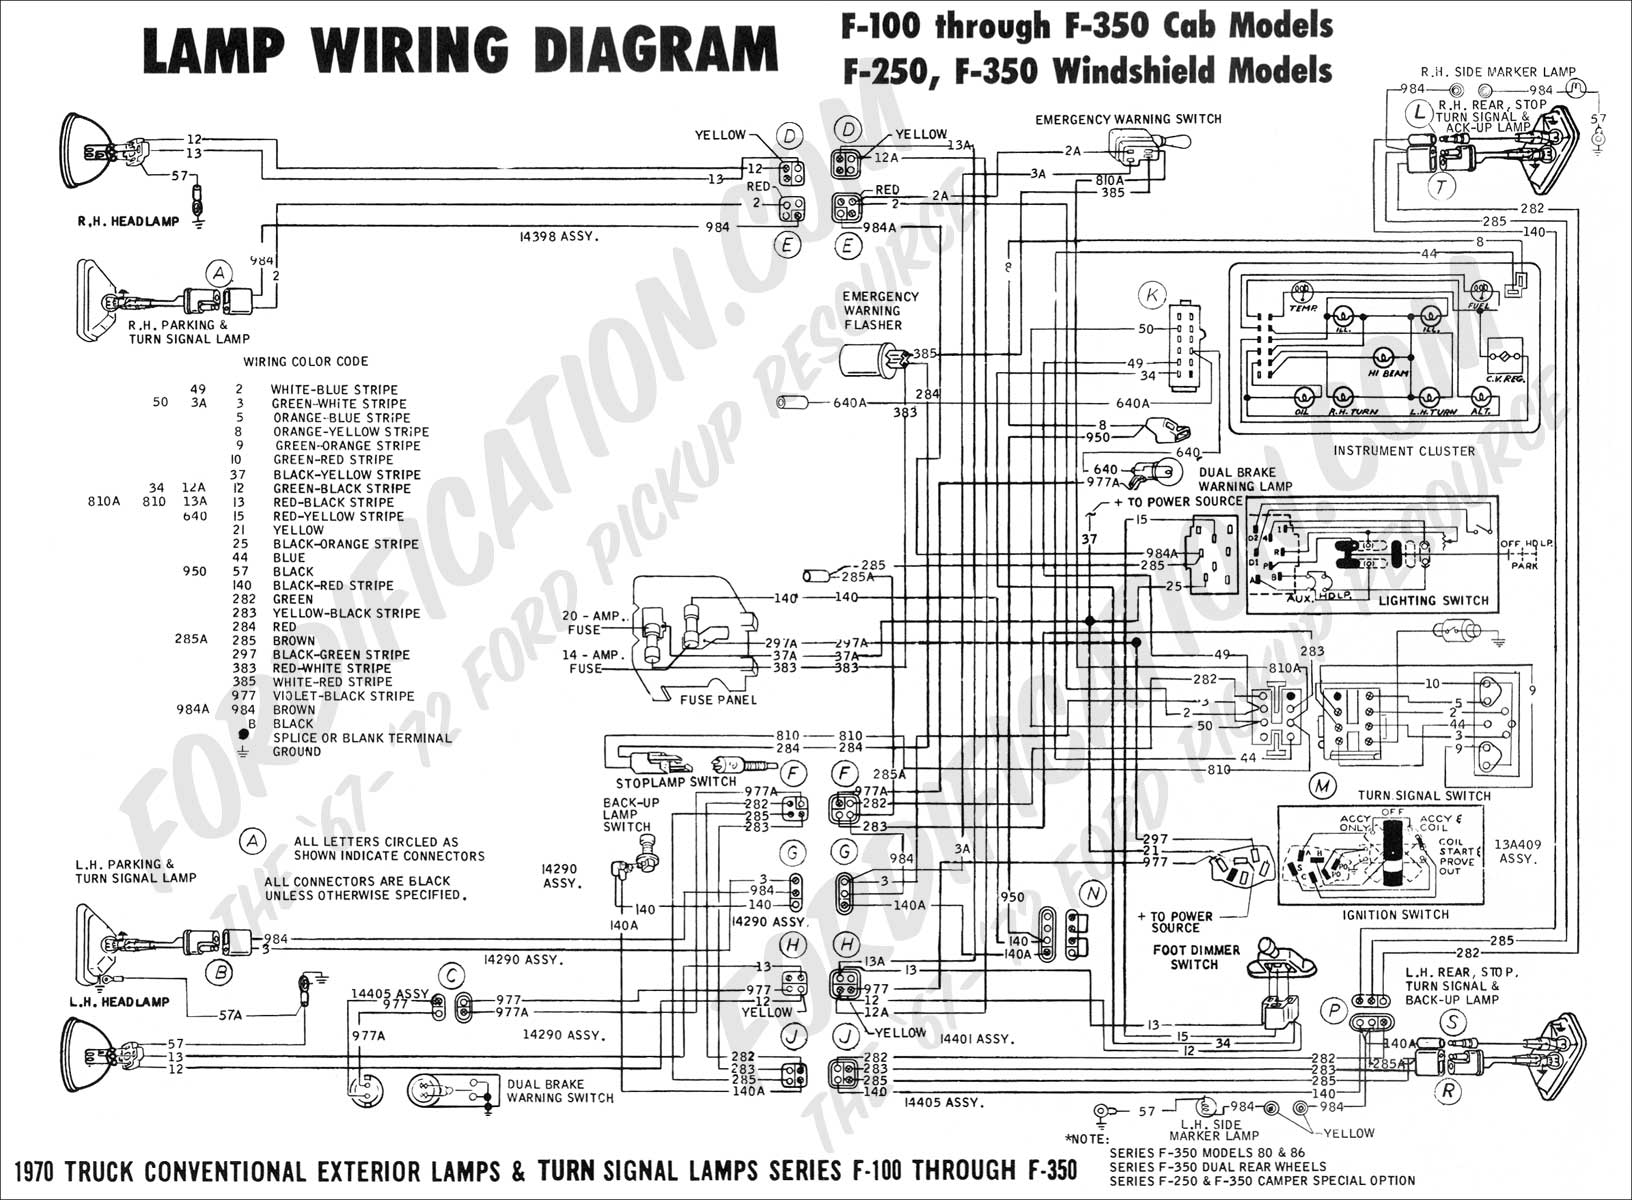 1999 Ford F750 Fuse Diagram Opinions About Wiring Diagram \u2022 1999 Tahoe Fuse  Diagram 1999 F150 Fuse Diagram